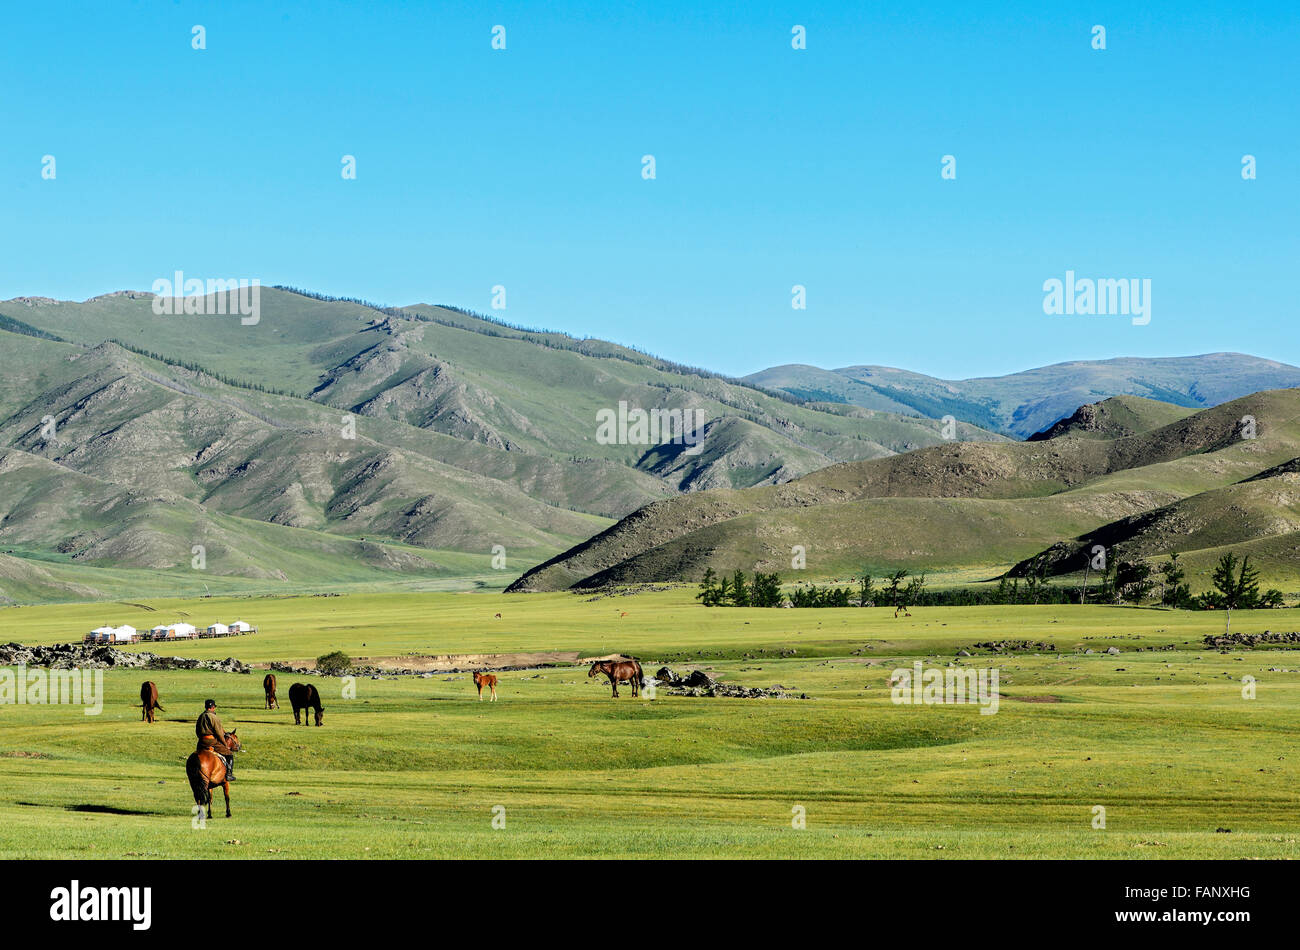 Nomads in the barren landscape in the Orkhon Valley, Khangai Nuruu National Park, Övörkhangai Aimag, Mongolia - Stock Image